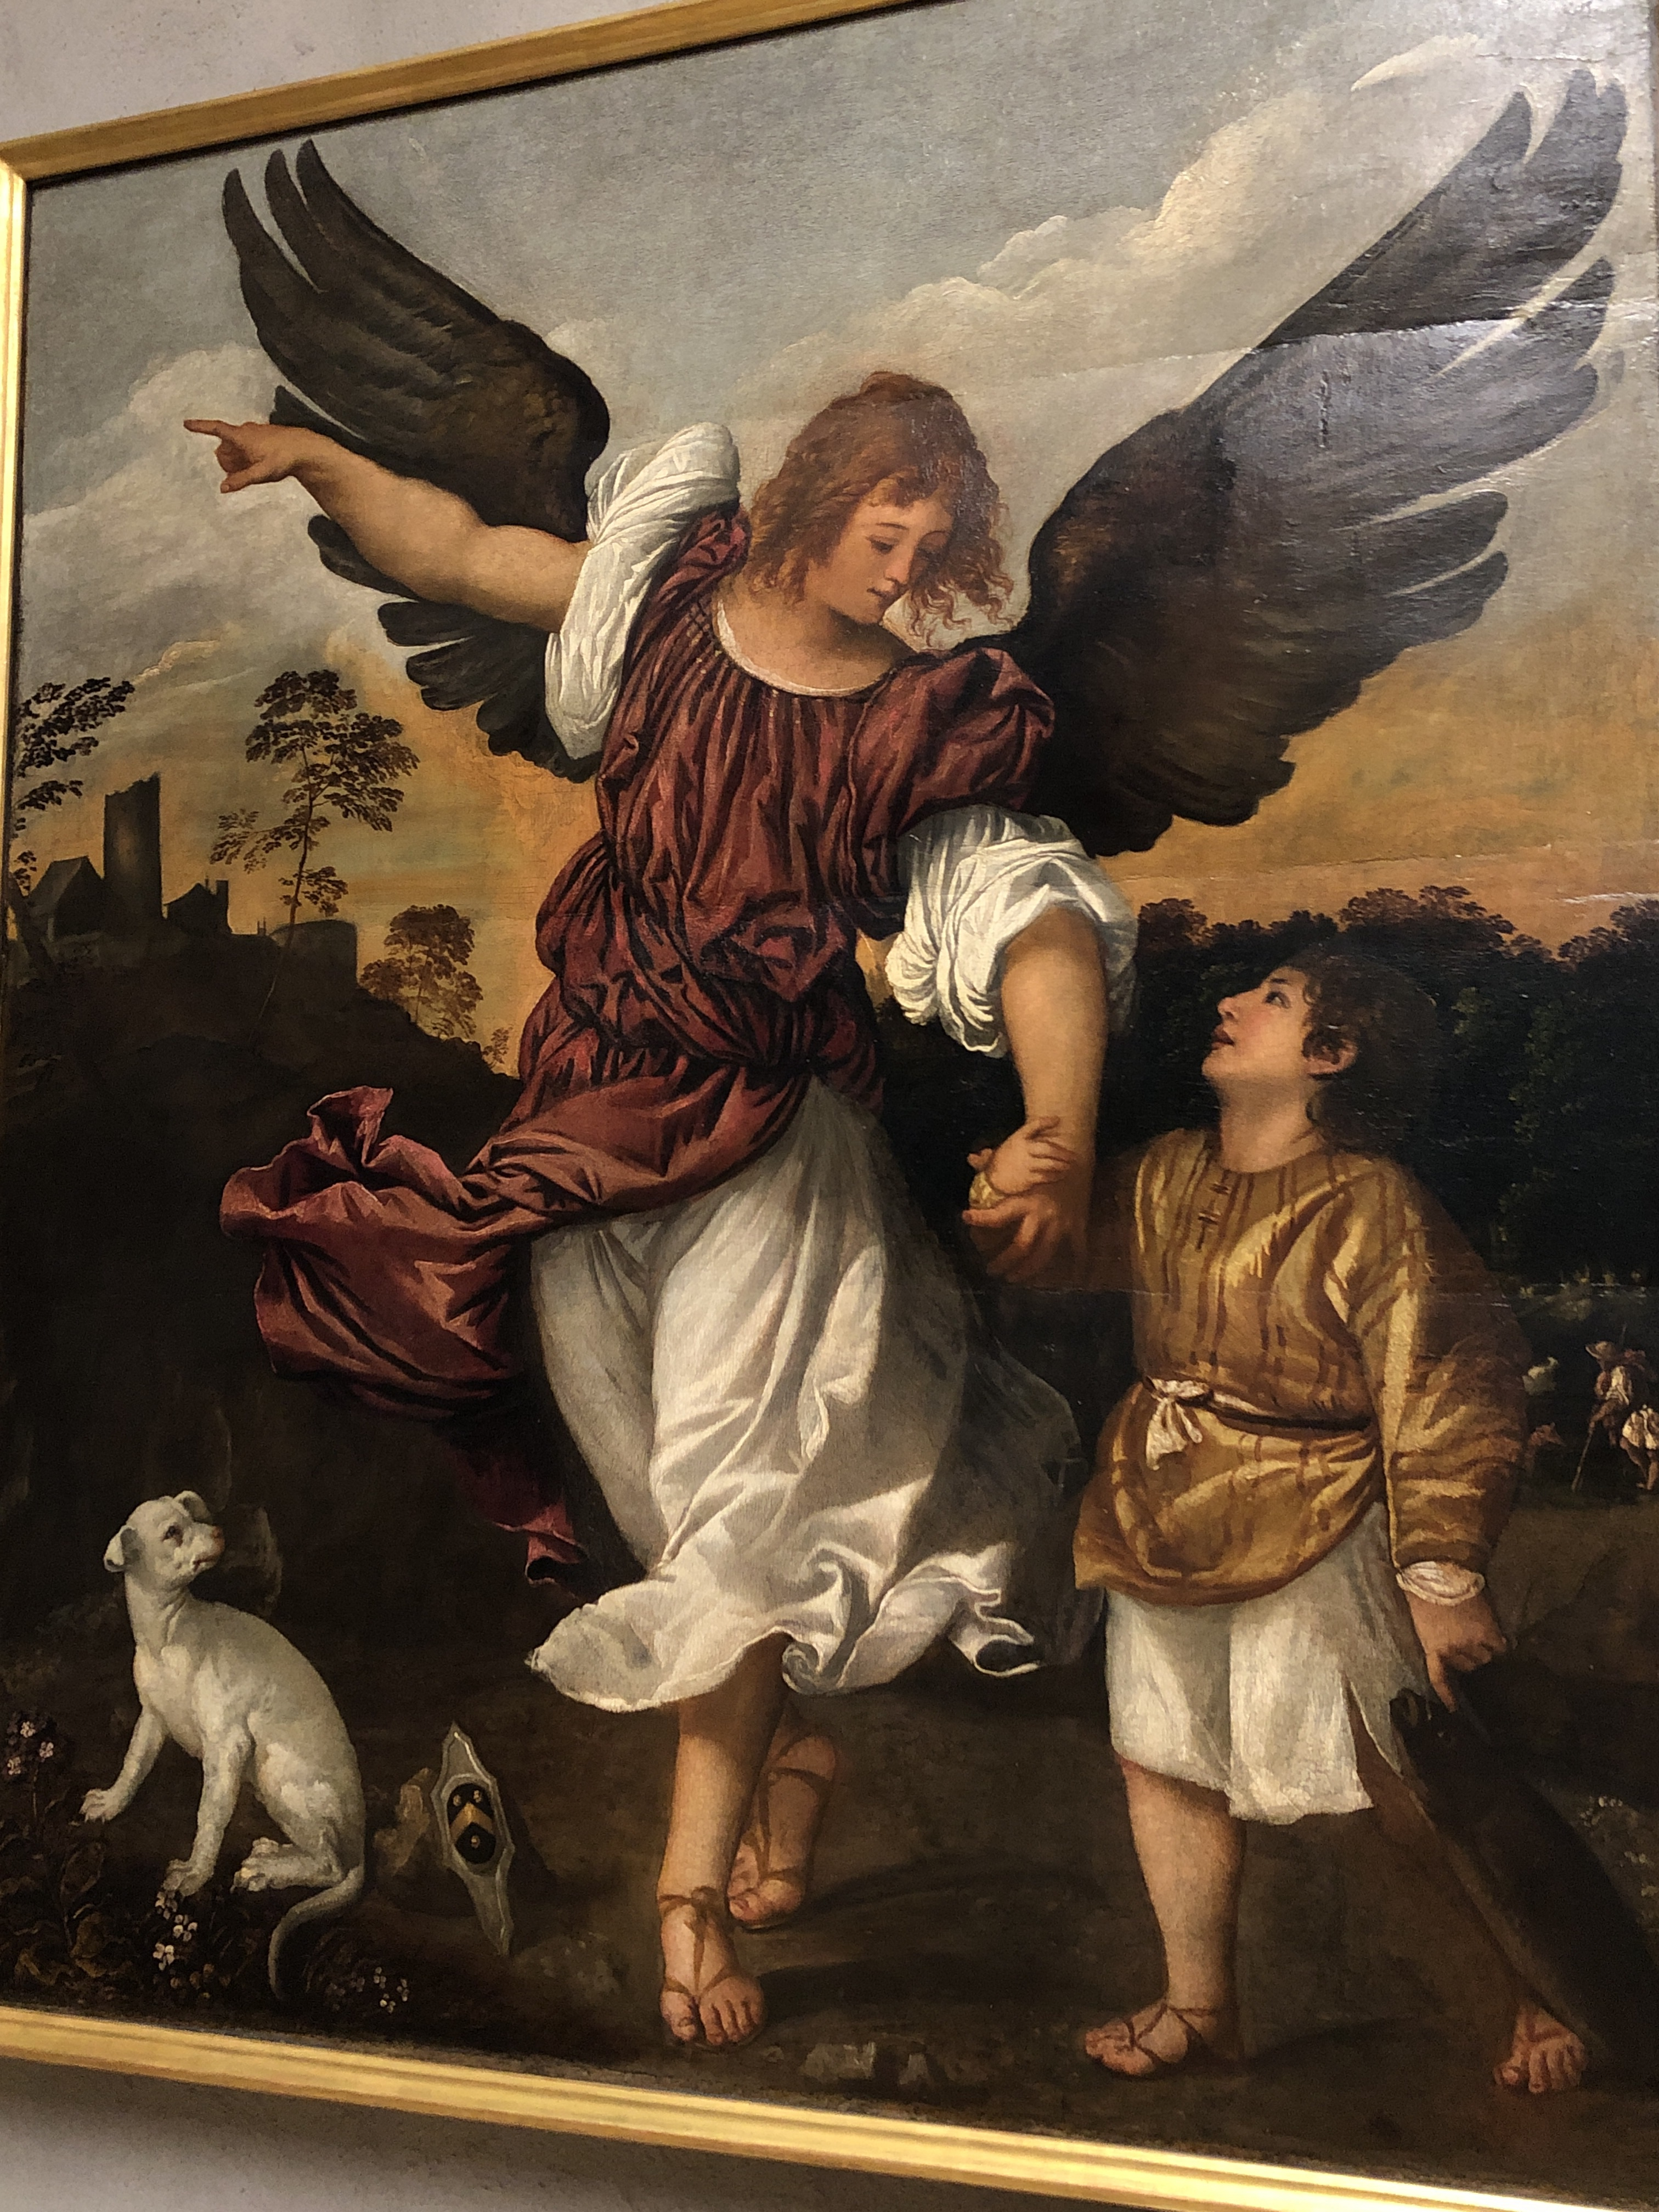 Titian's Tobias and the Angel reminded me immediately of Salley Vickers novel of the same name. Beautifully painted, light & movement. Trust and joy.